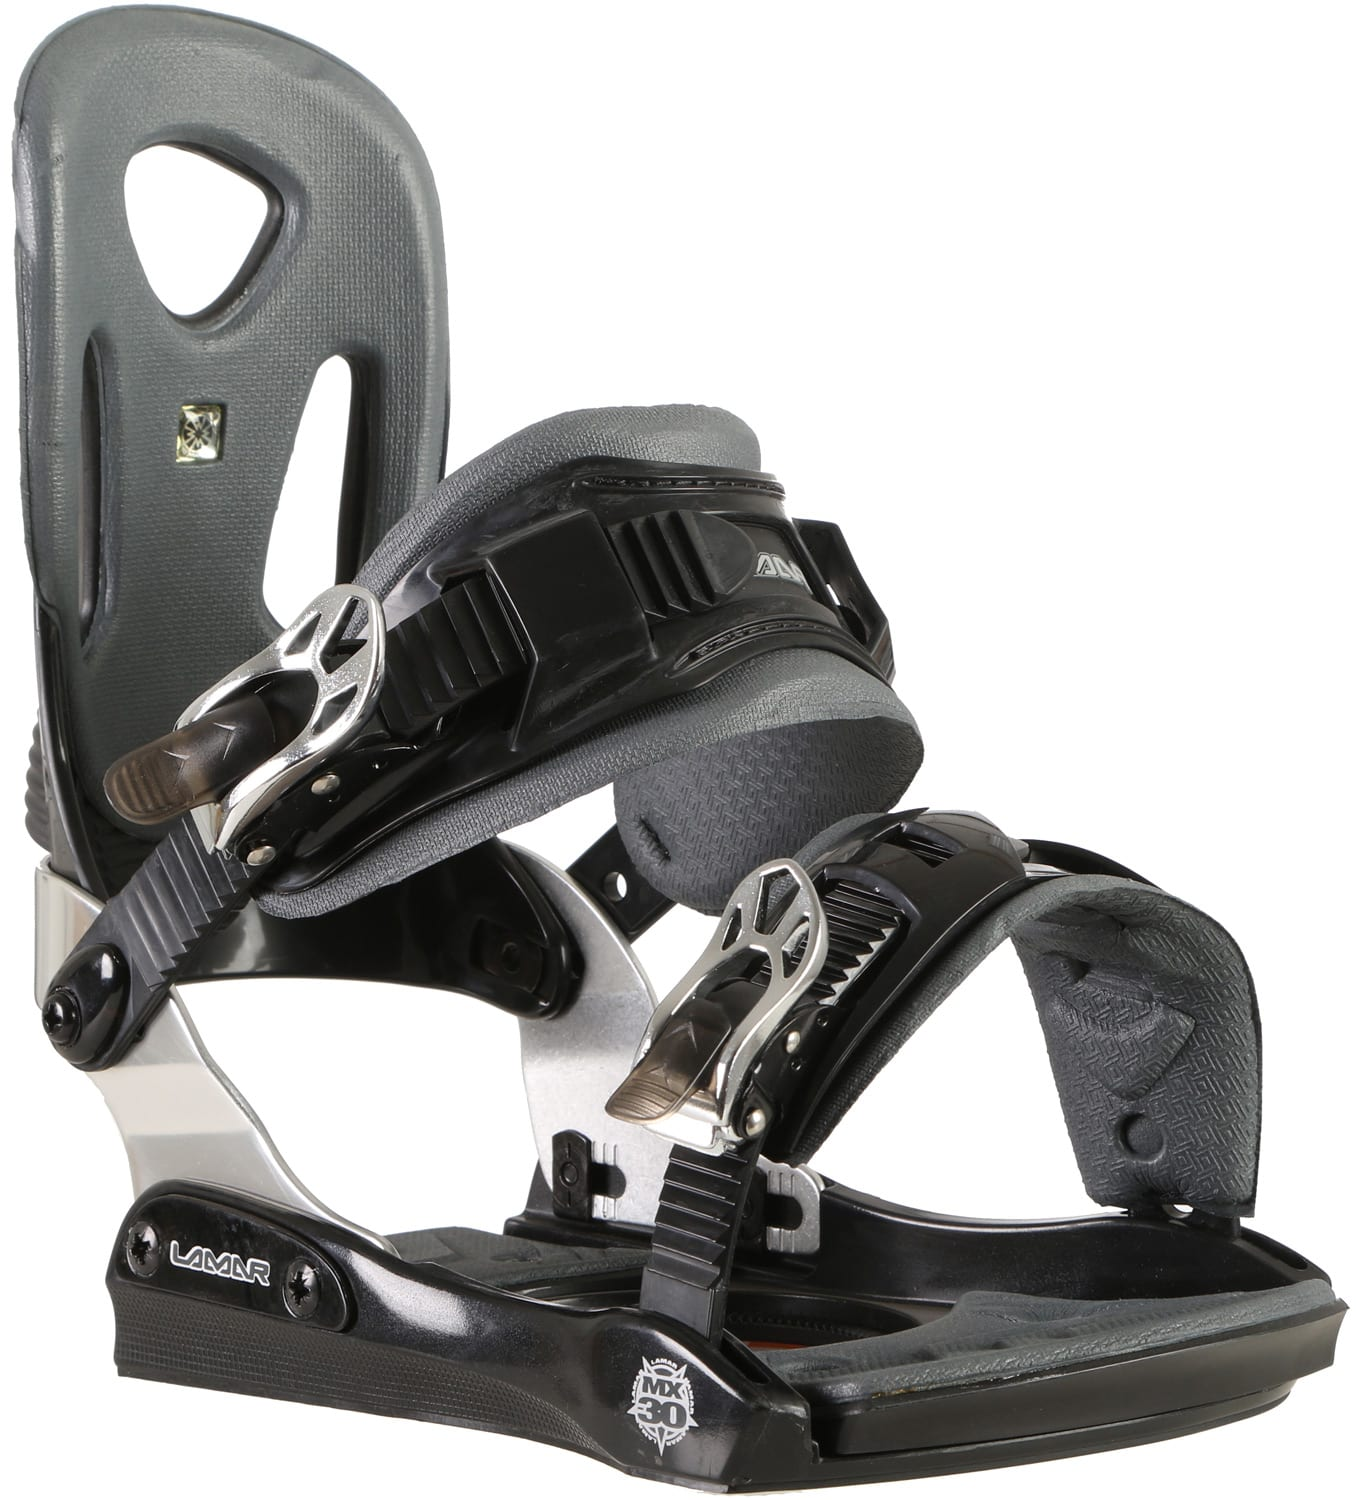 On Sale Lamar MX30 Smu Snowboard Bindings Up To 80% Off